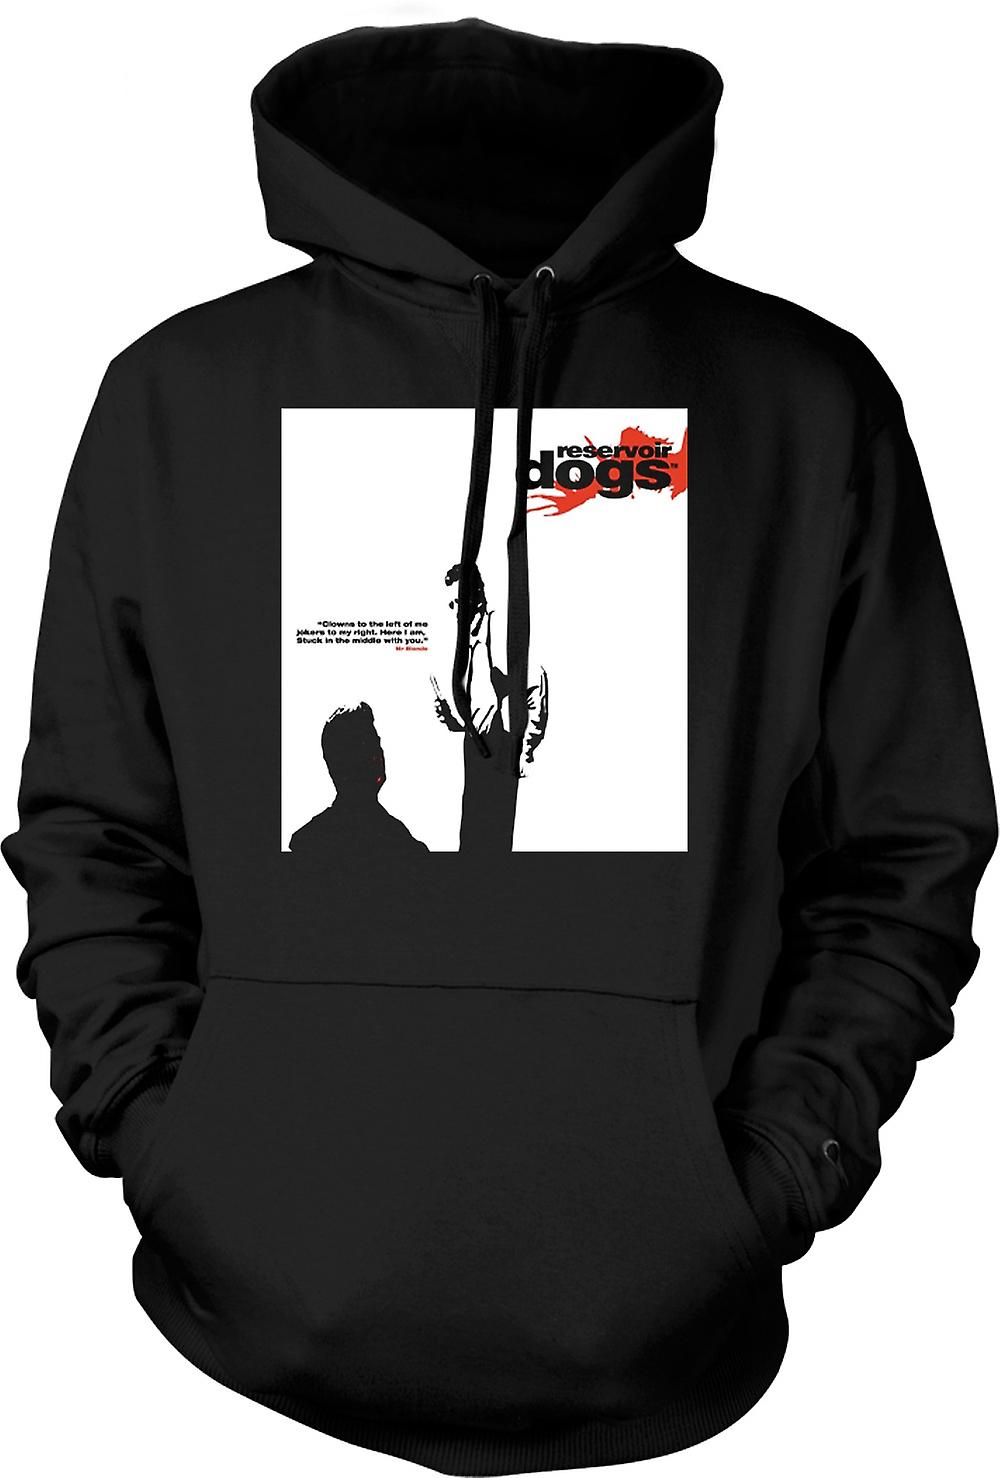 Mens Hoodie - Reservoir Dogs - clown a sinistra